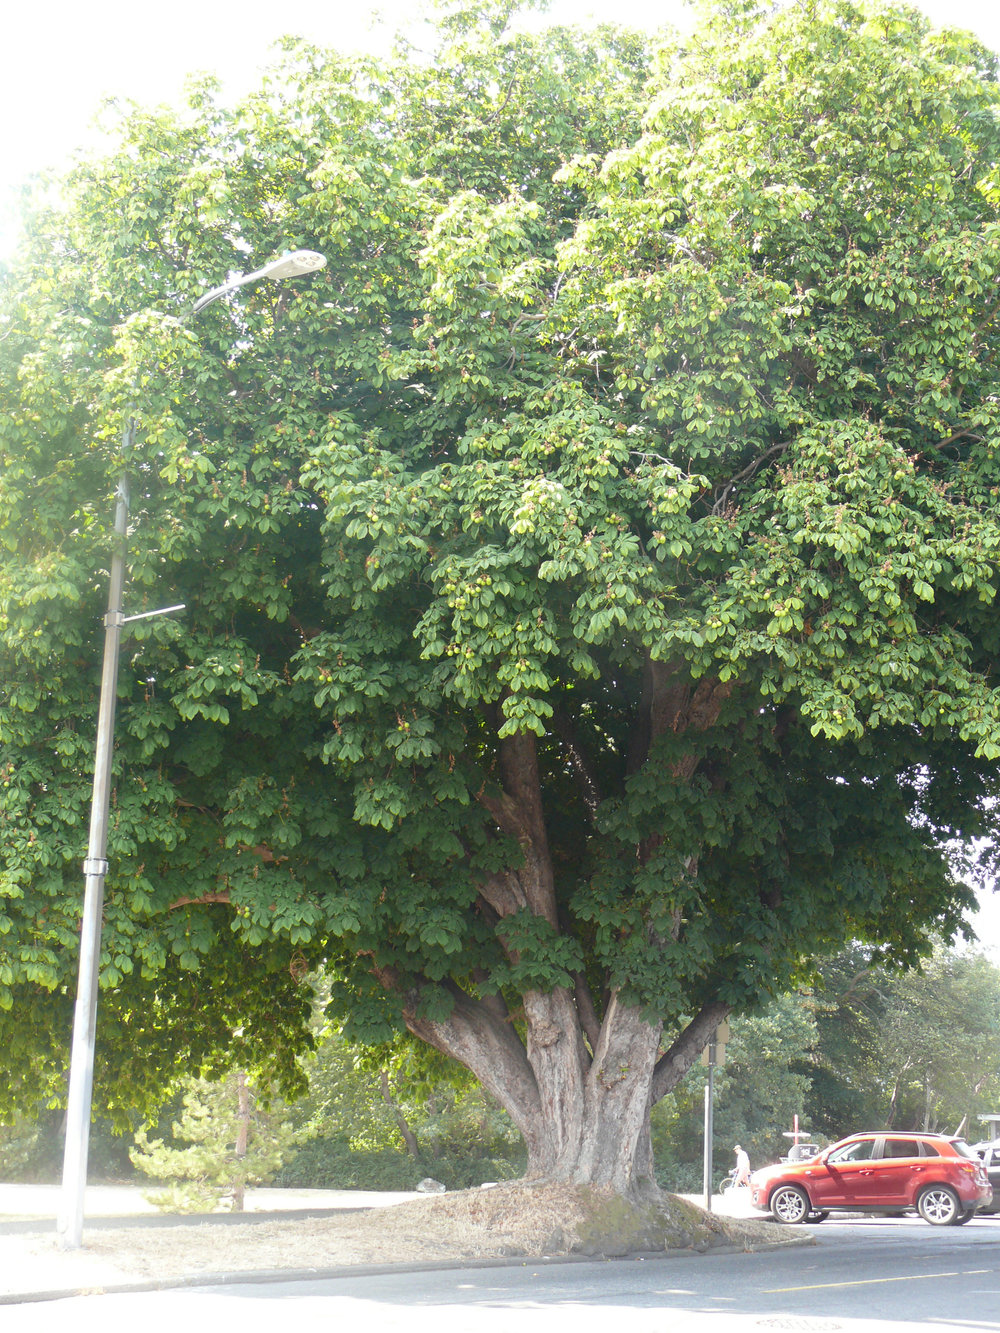 Horse chestnut tree at the intersection of Dallas and Government Streets near Harrison Pond.(#56 on Arborist Report. Photo by Rita Button.)